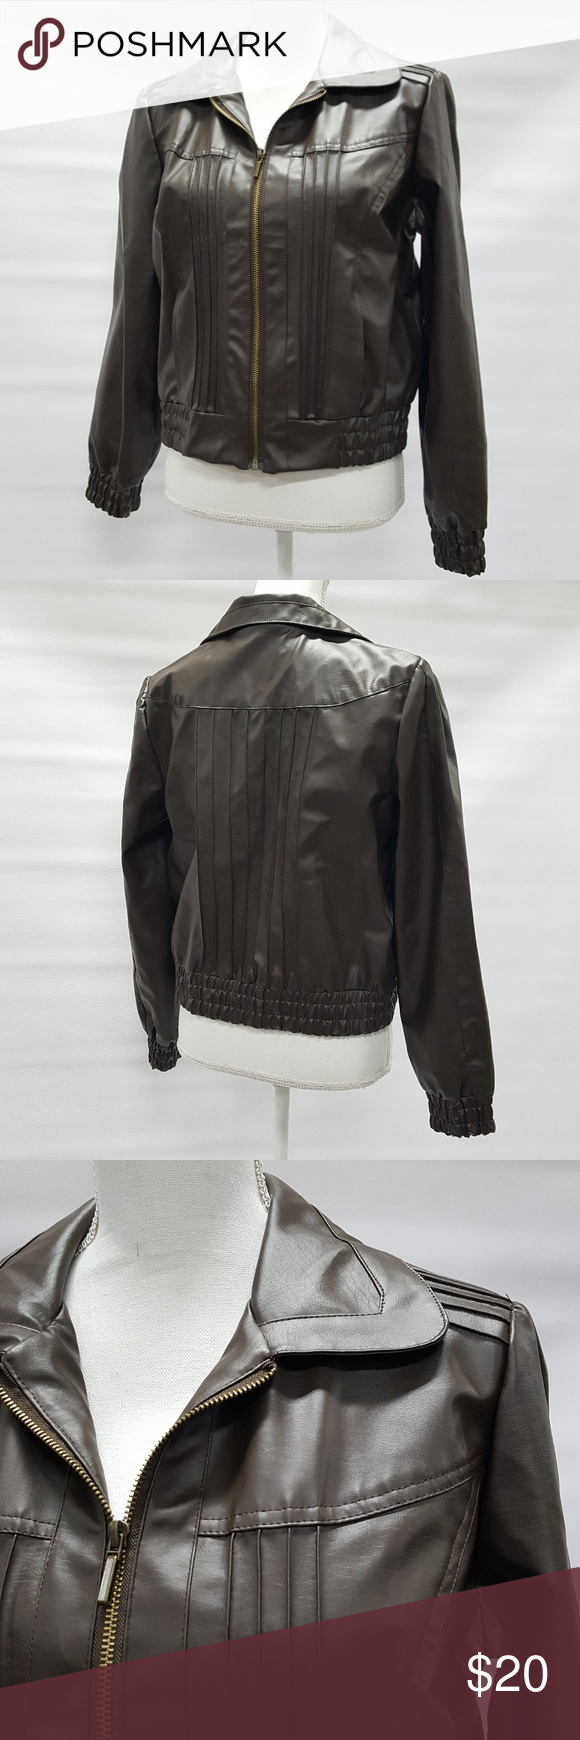 New Directions Faux Leather Jacket Petite Large Faux Leather Jackets Leather Jacket Brown Jacket